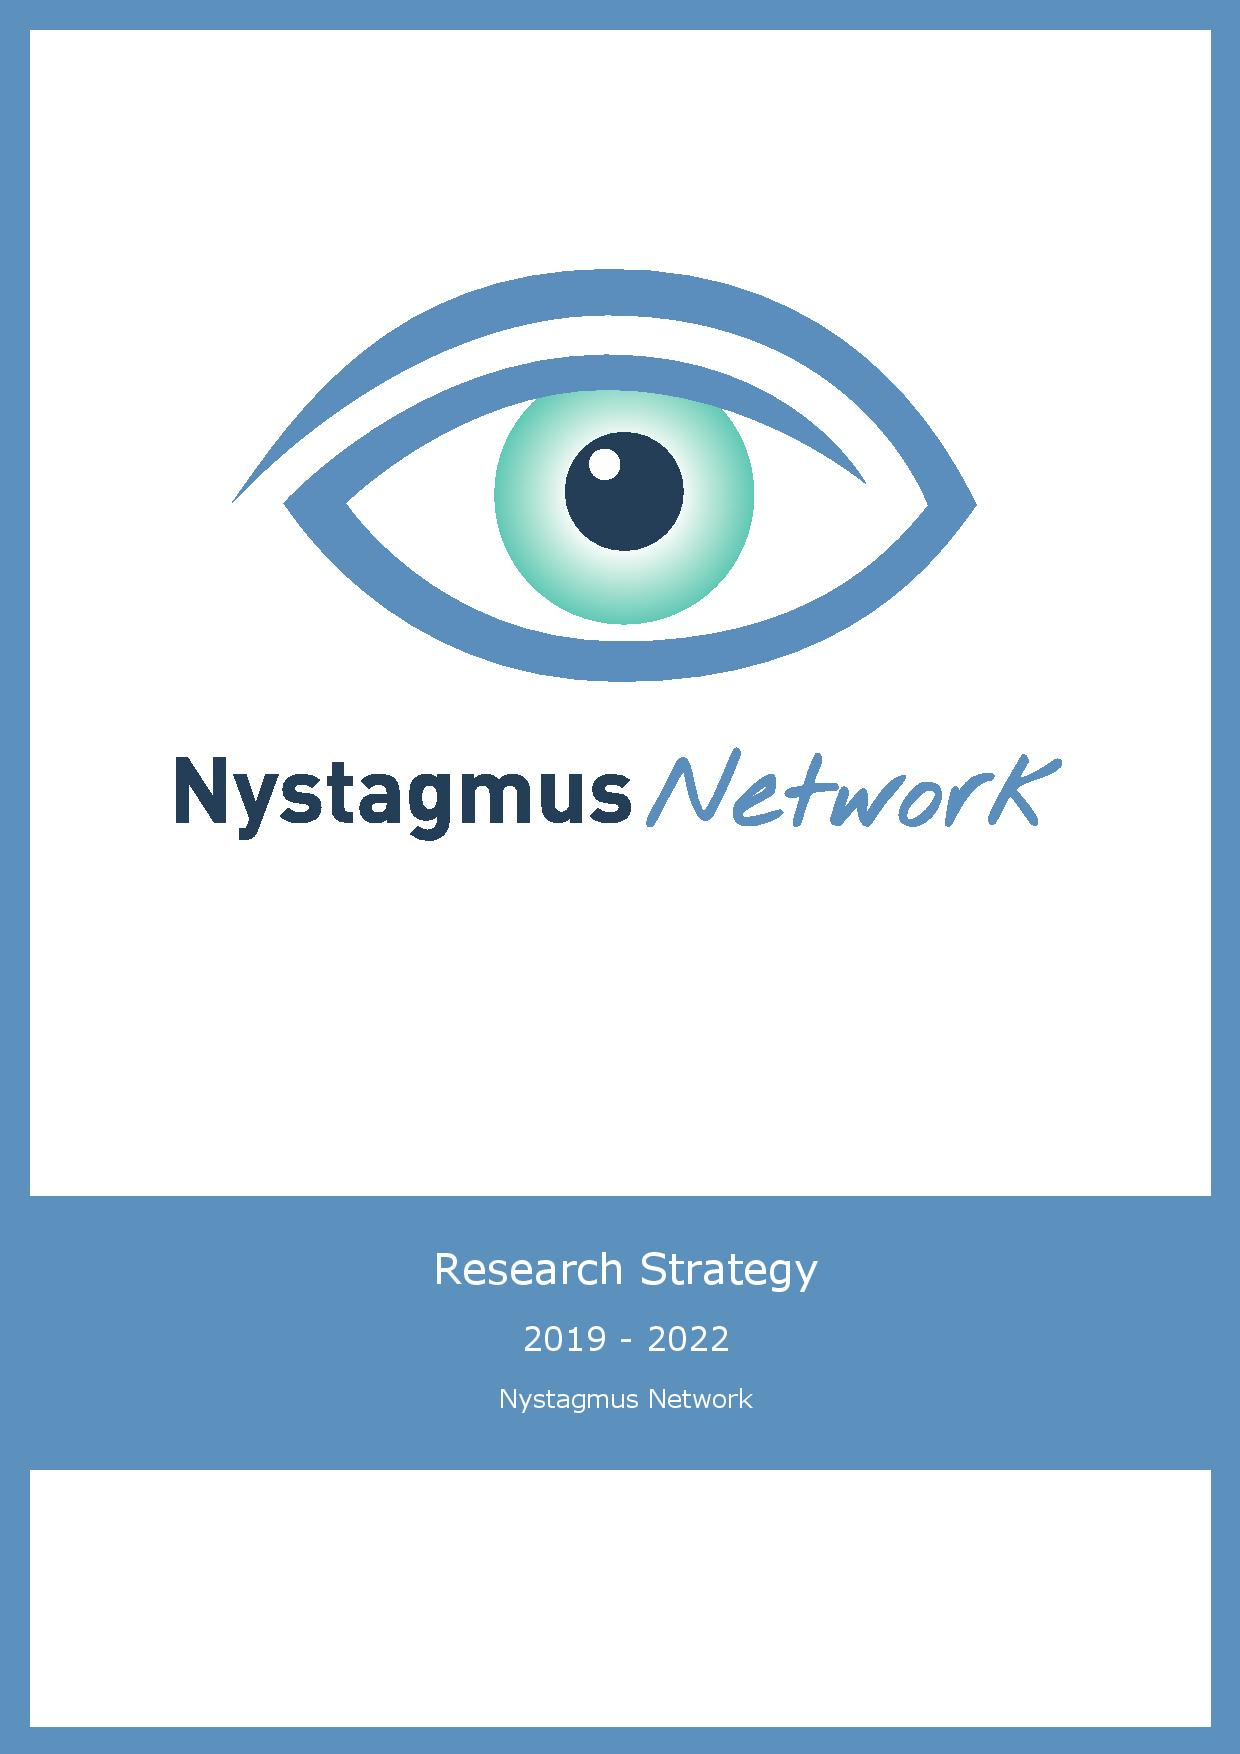 Research Strategy 2019 to 2022